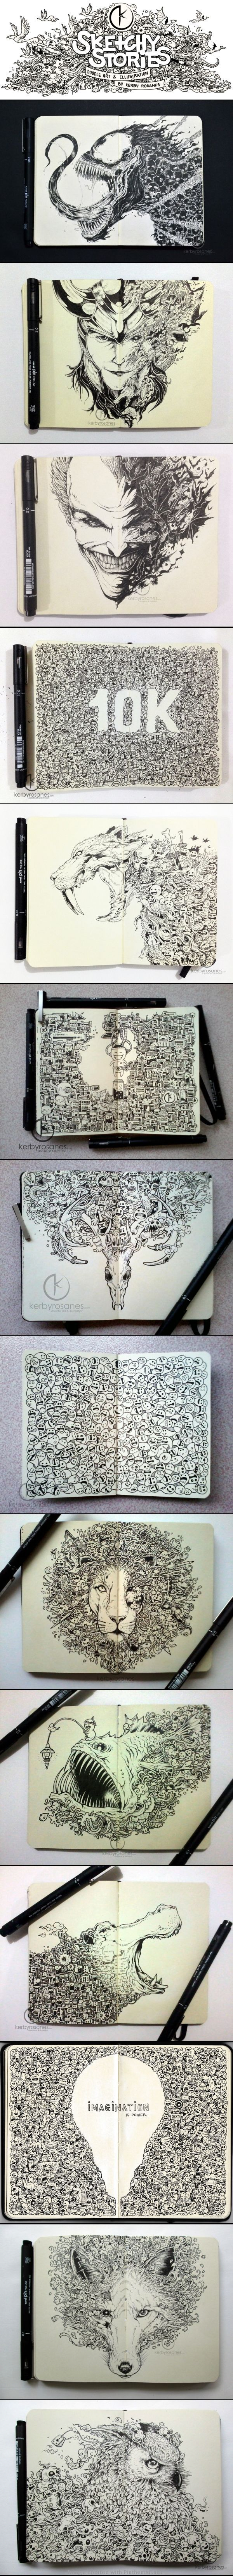 Moleskine sketches by kerby rosanes: